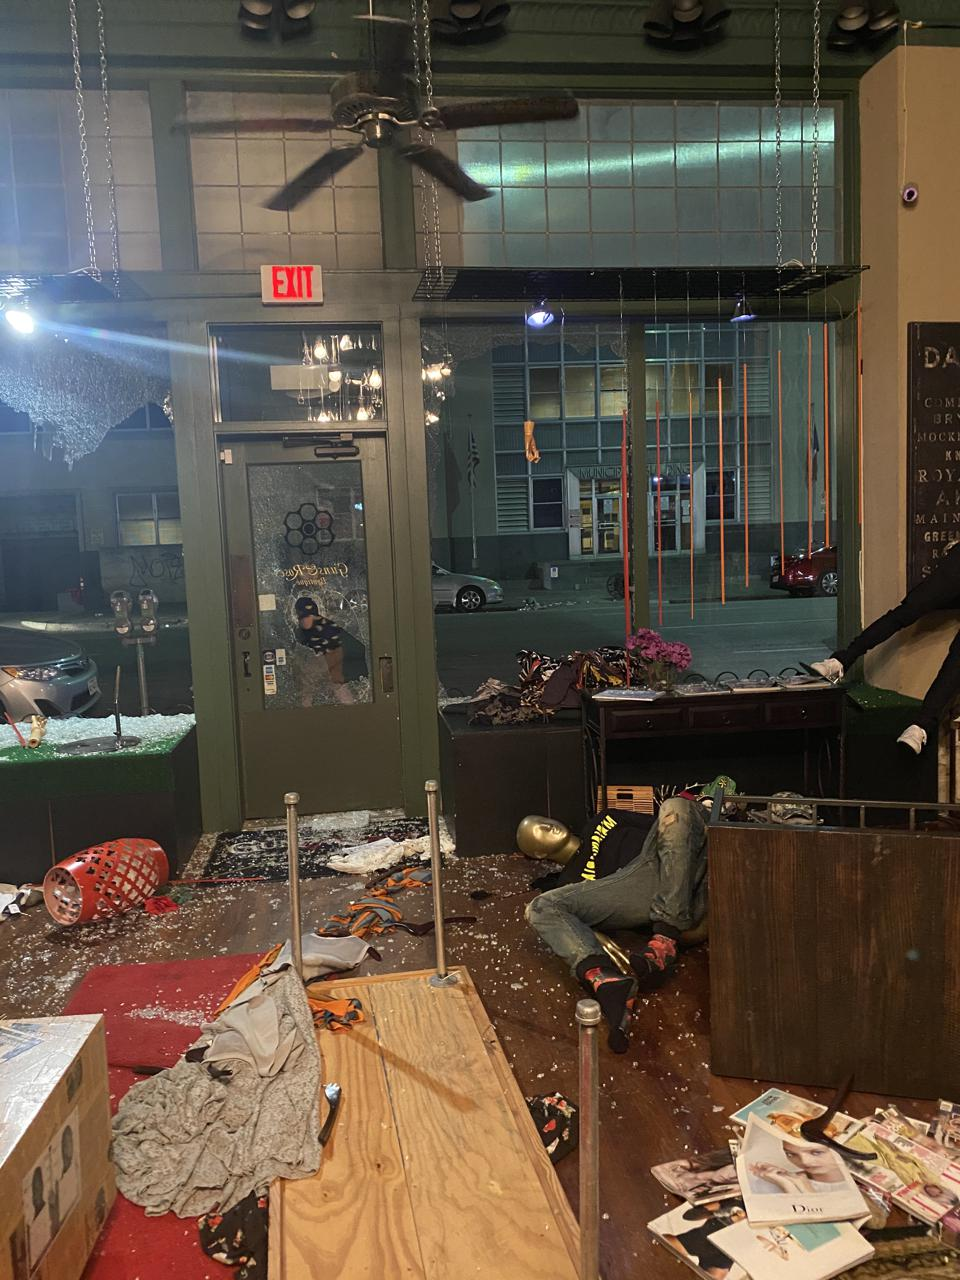 Guns & Roses Boutique in Dallas, TX after looters smashed the windows and stole merchandise.